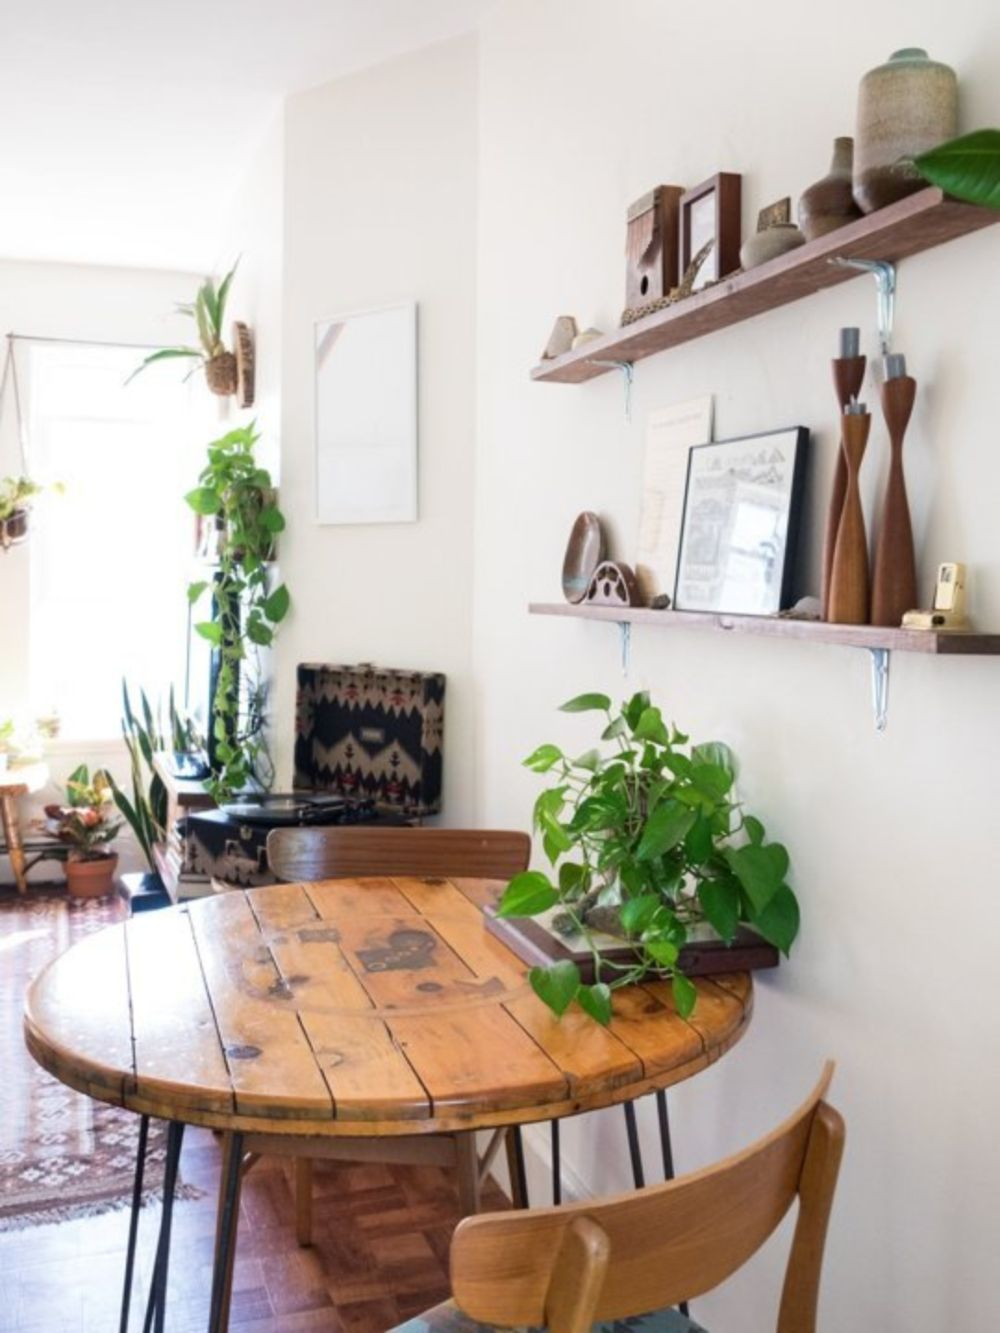 40 Charming Apartment Decor Ideas for Small Space